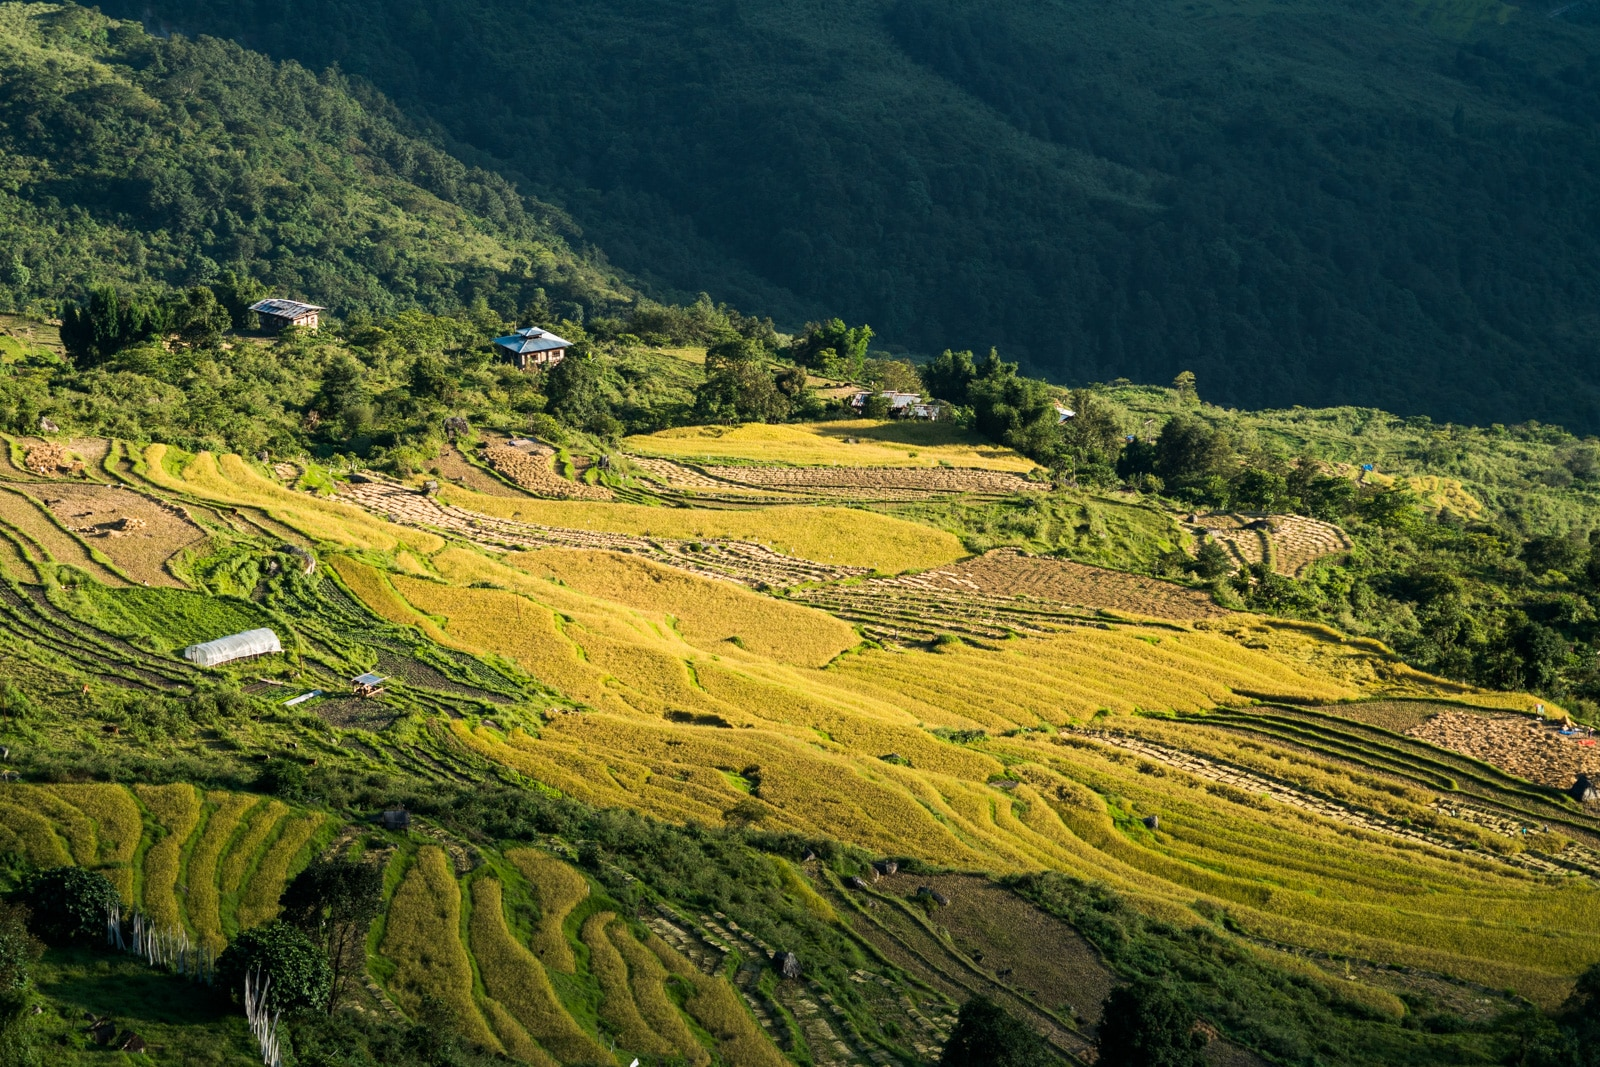 Stunning photos of Bhutan - Golden fields of rice in Kuengarabten village - Lost With Purpose travel blog